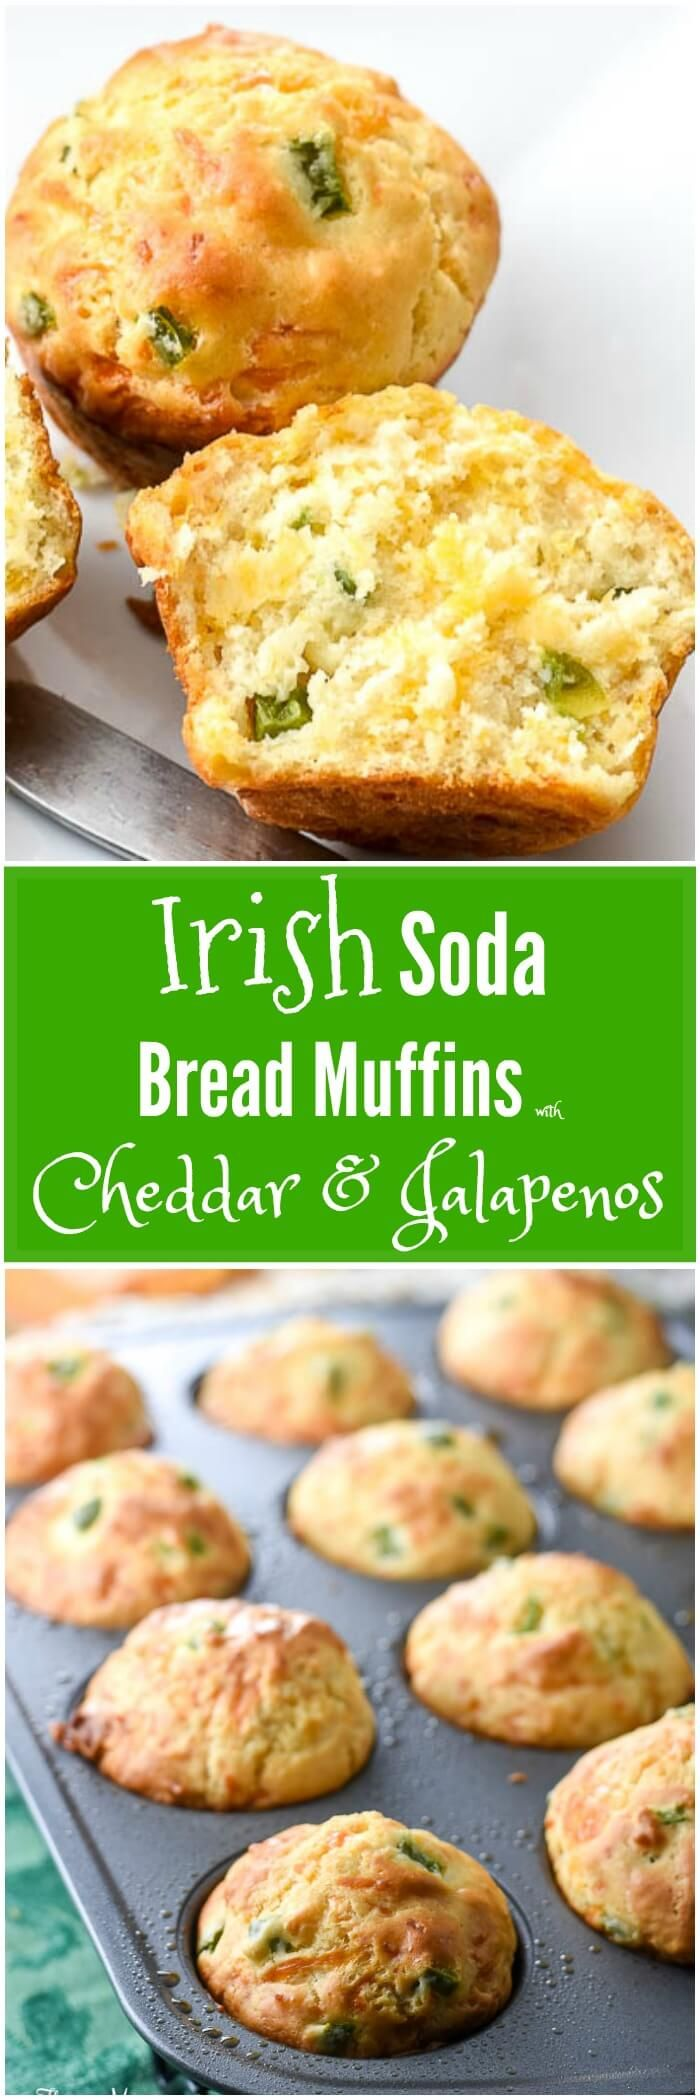 I transformed the traditional Irish Soda Bread recipe into smaller muffins and added a Texas twist with cheddar and jalapenos.  With St Patrick's Day around the corner,everyone pulls out their Irish recipes. Yes. I know. These arenot traditional Irish Soda Bread. via @flavormosaic